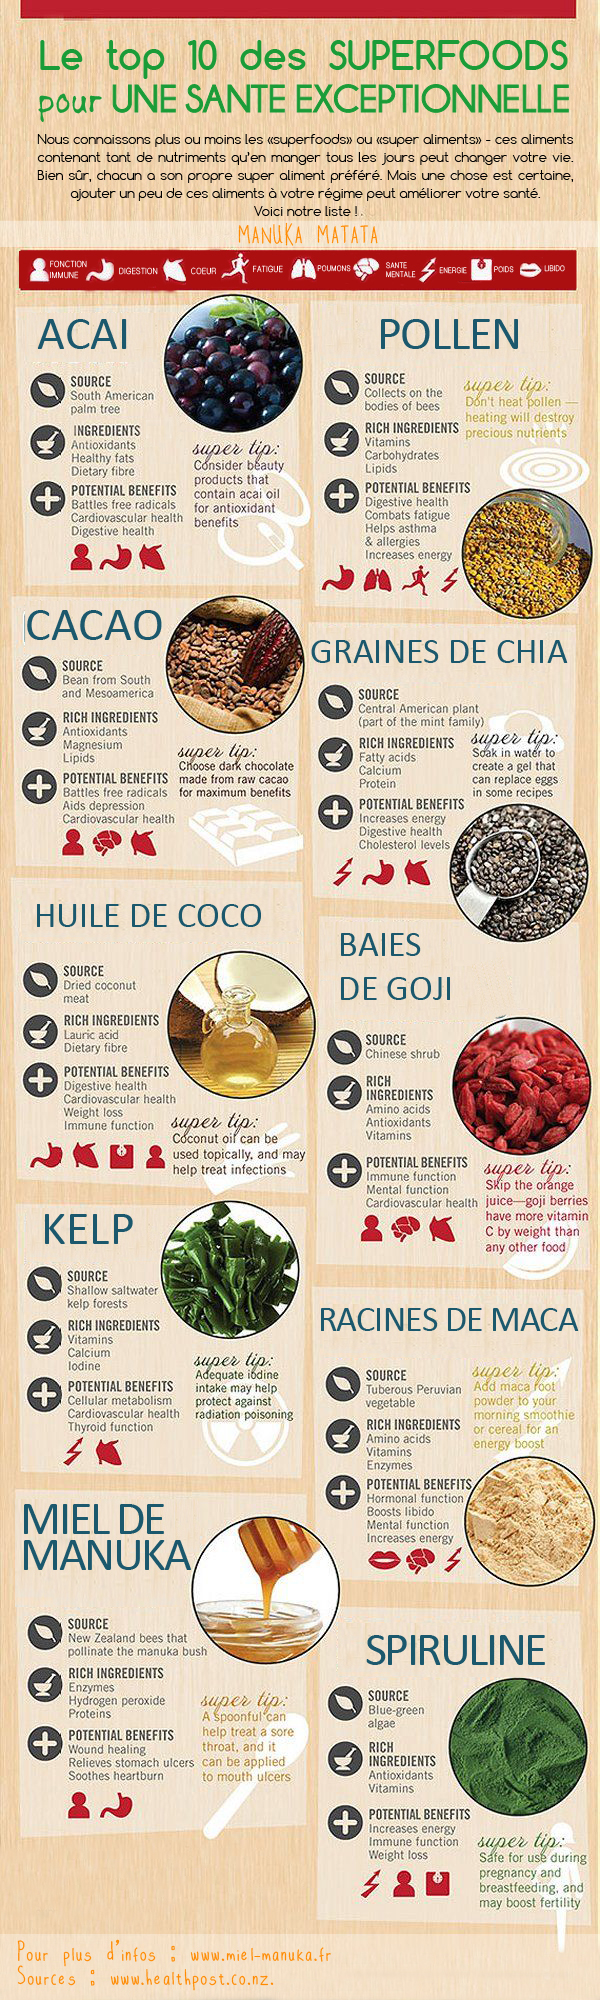 infographie-les-super-aliments-superfoods